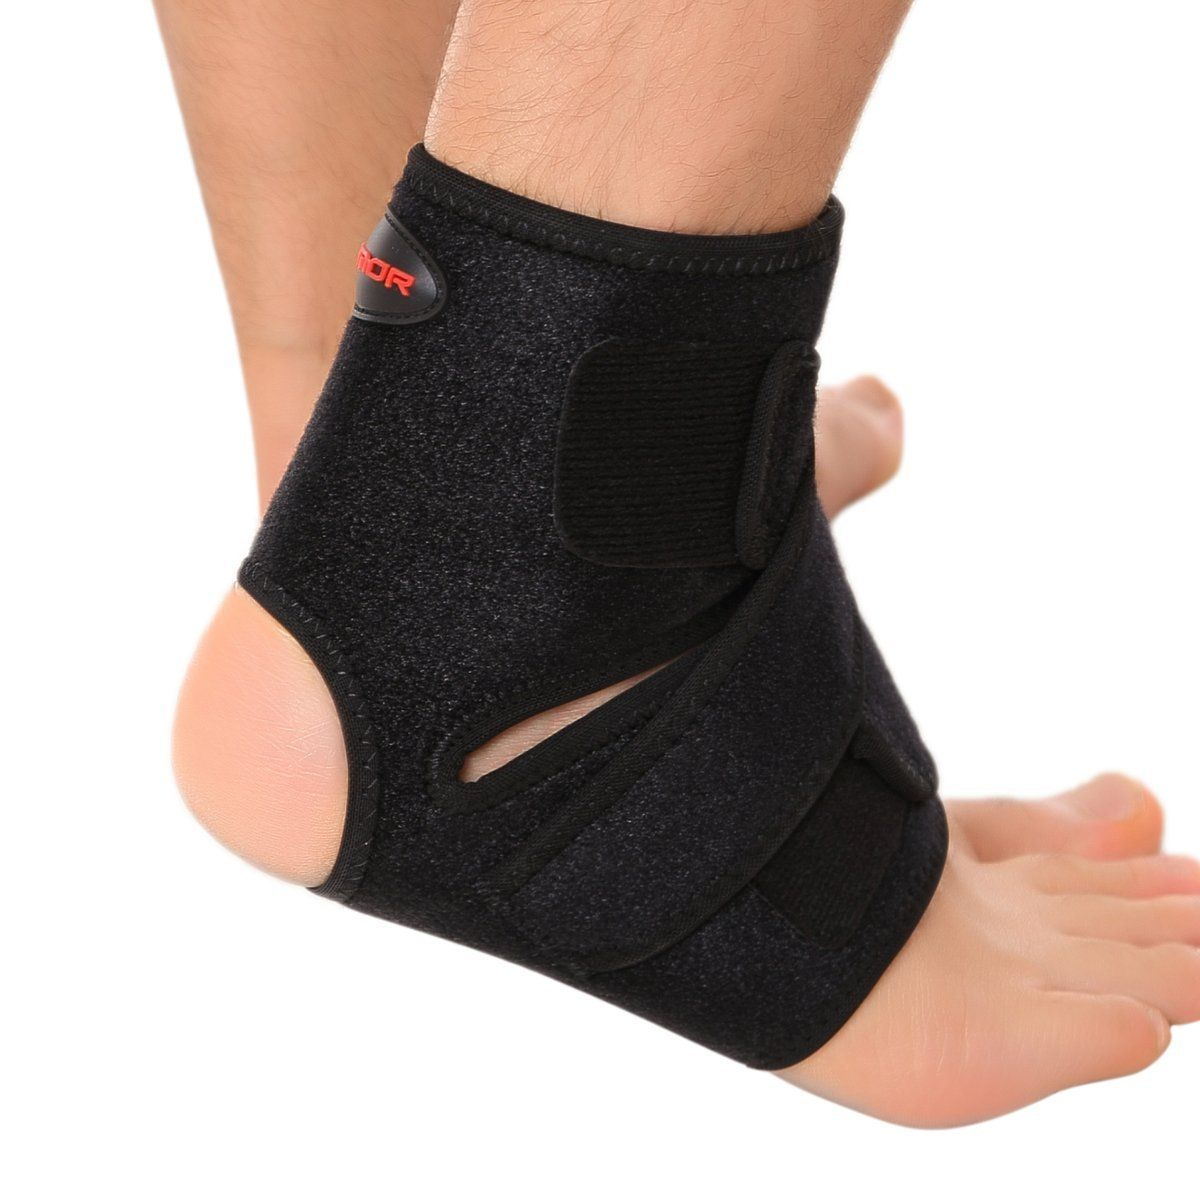 Top 10 Best Ankle Braces For Basketball In 2020 Reviews Sprained Ankle Ankle Braces Ankle Support